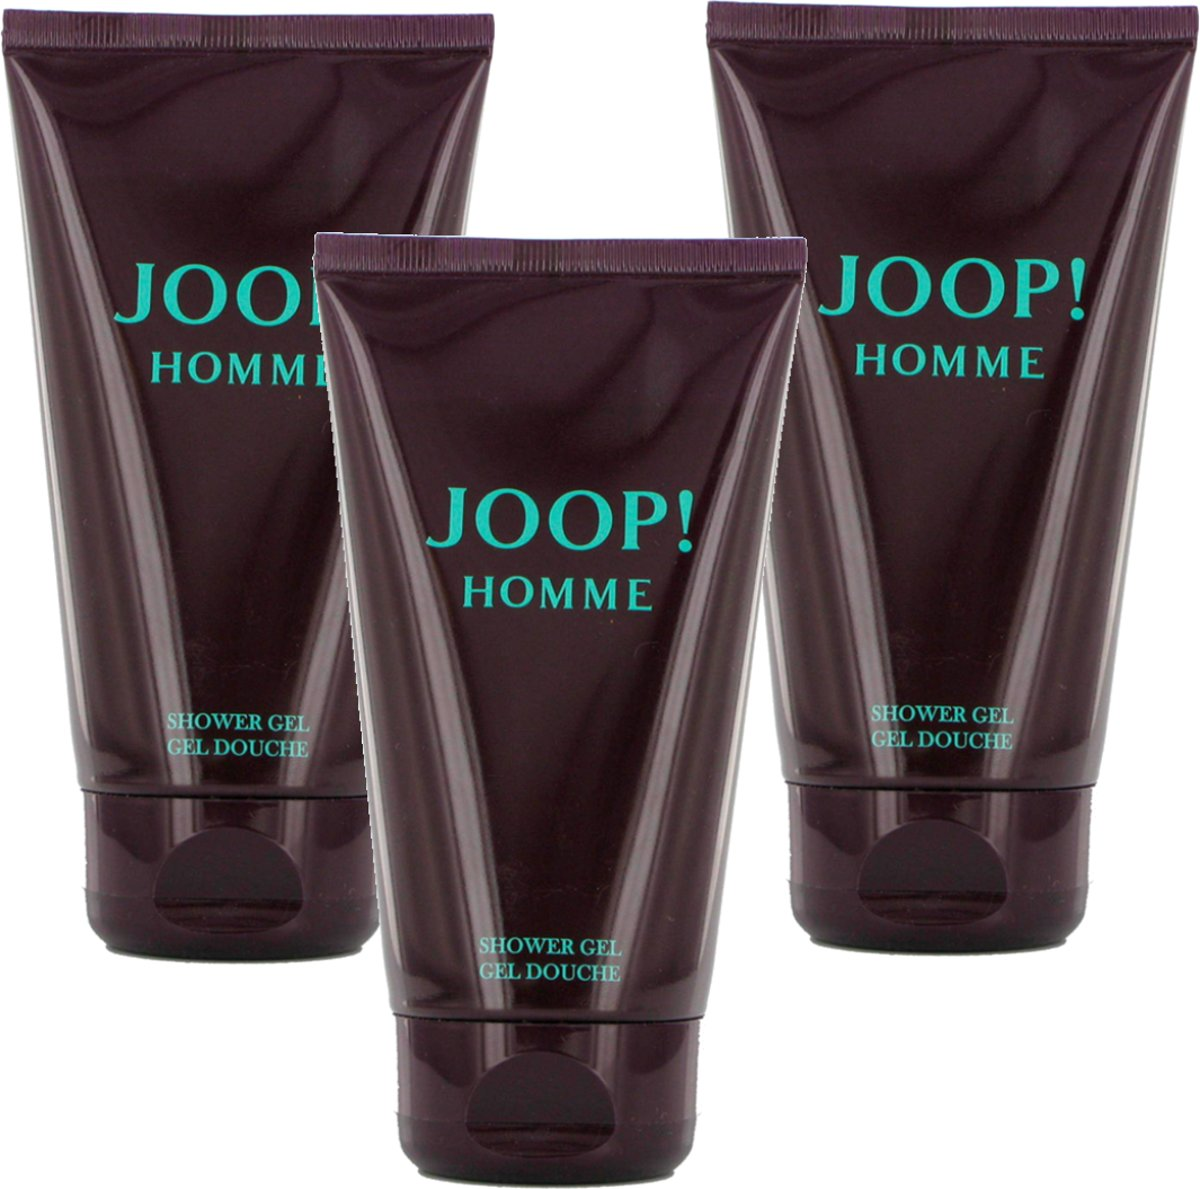 3x Joop! Homme shower gel 150 ml